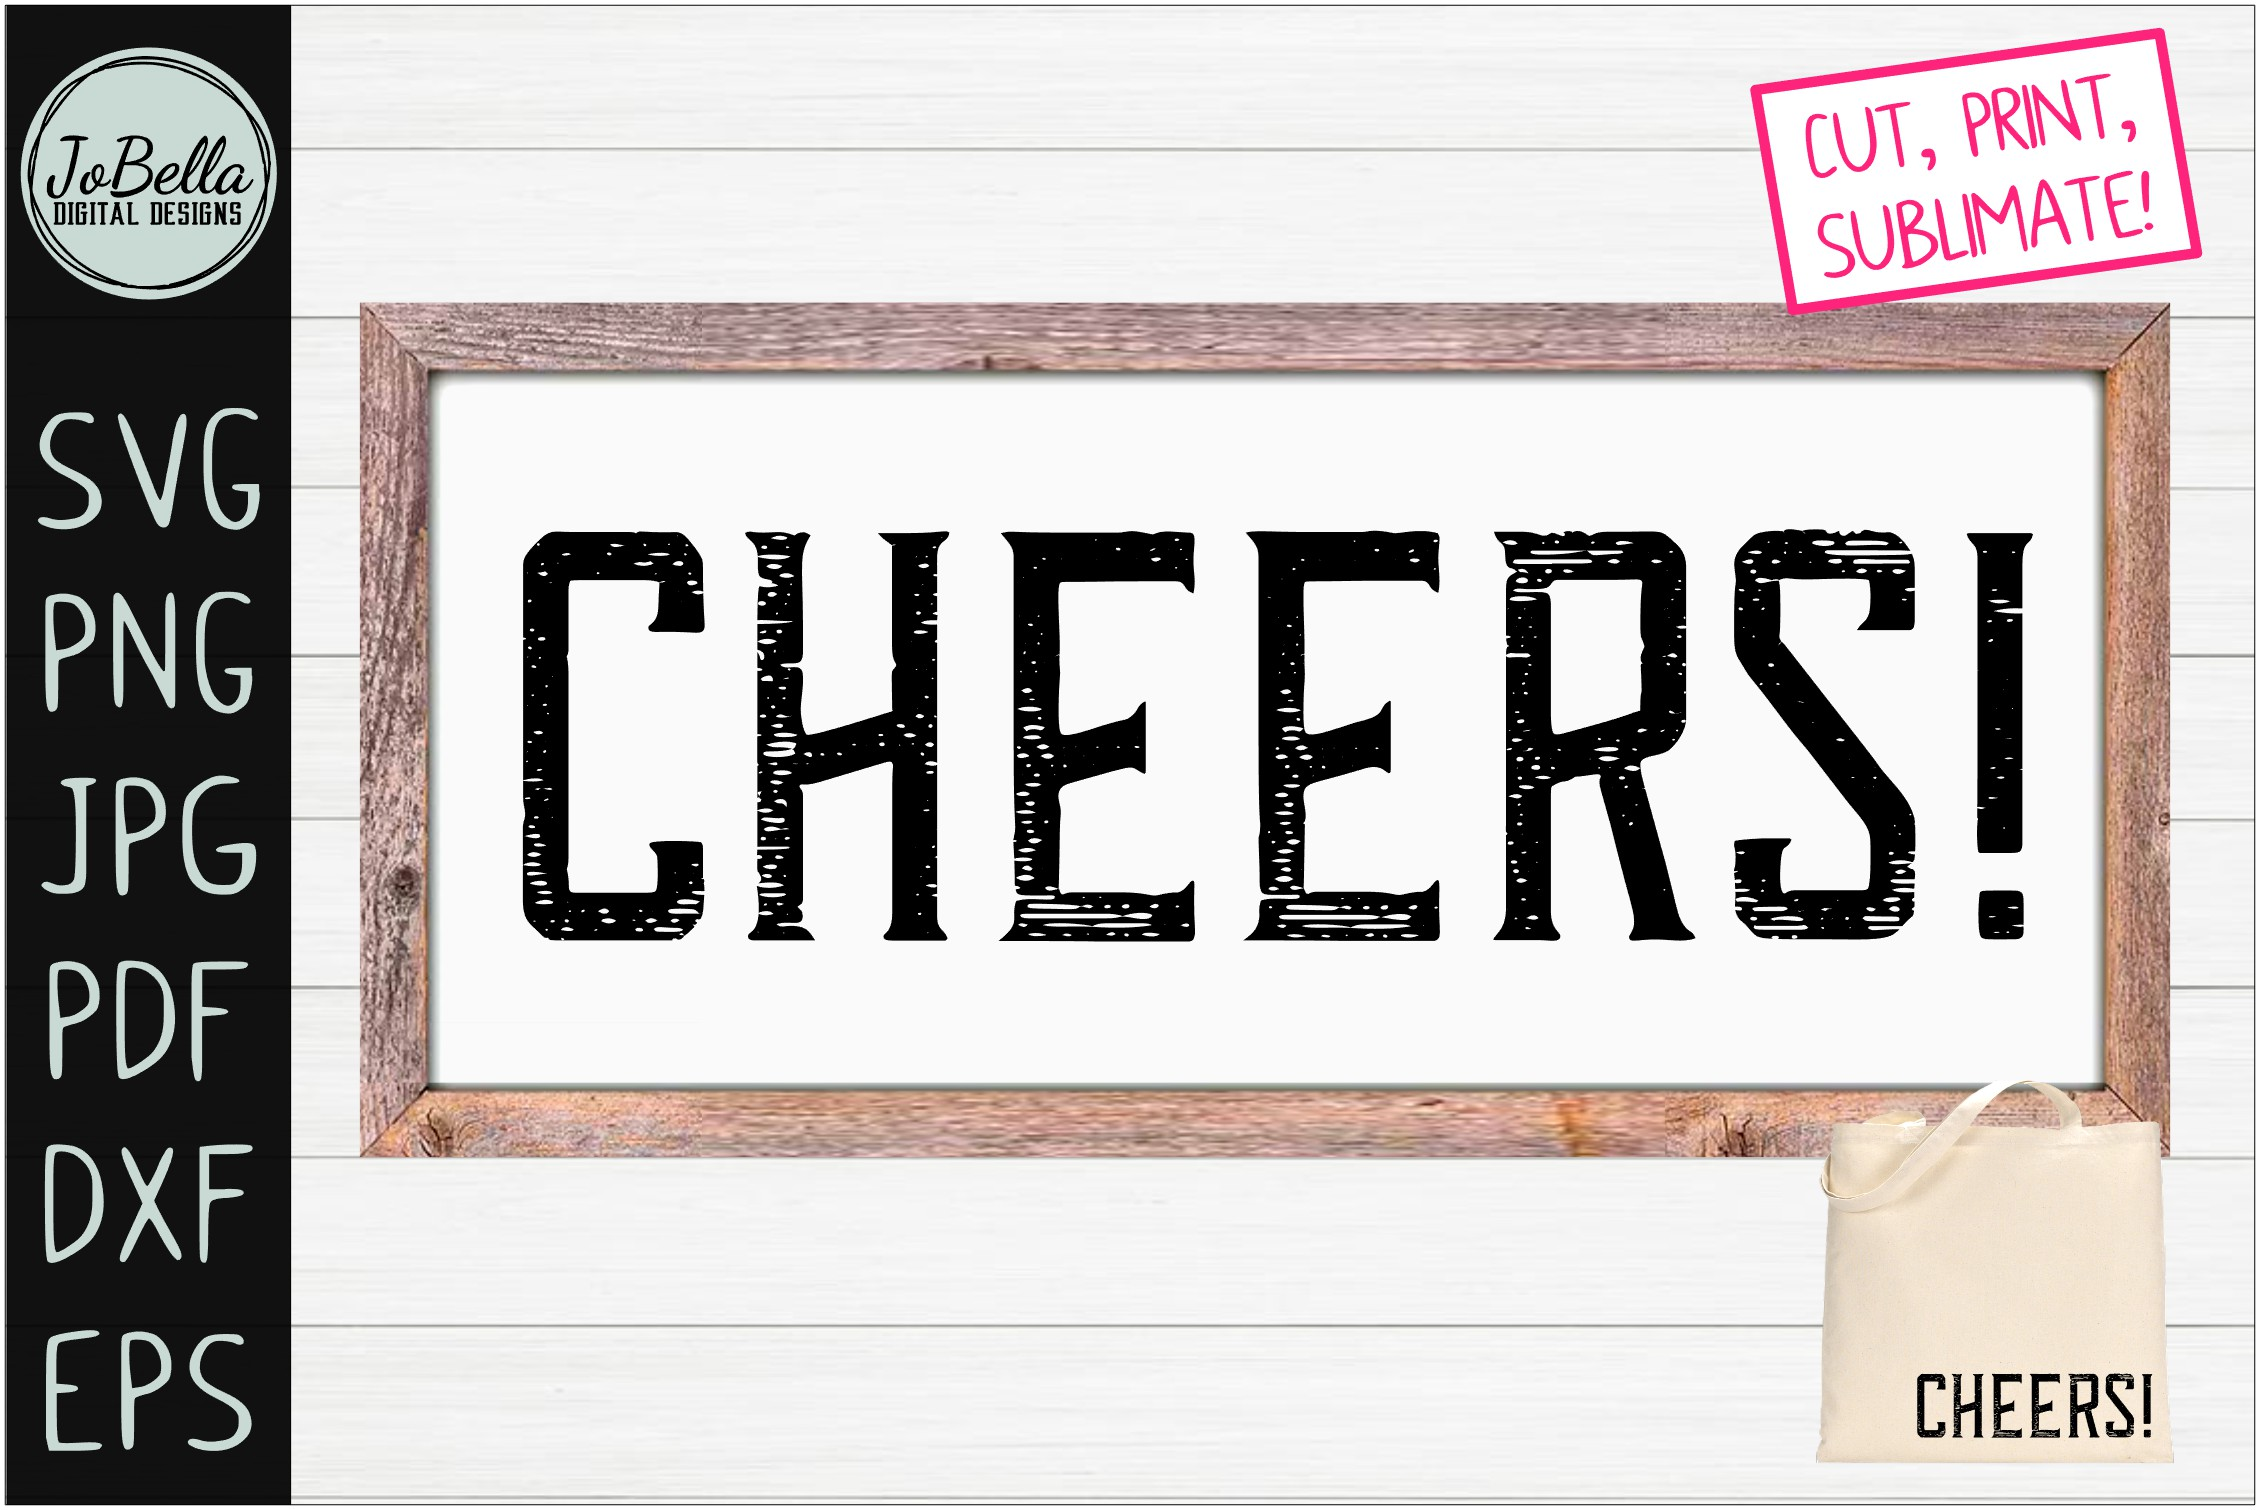 Download Free Vintage Cheers Graphic By Jobella Digital Designs Creative Fabrica for Cricut Explore, Silhouette and other cutting machines.